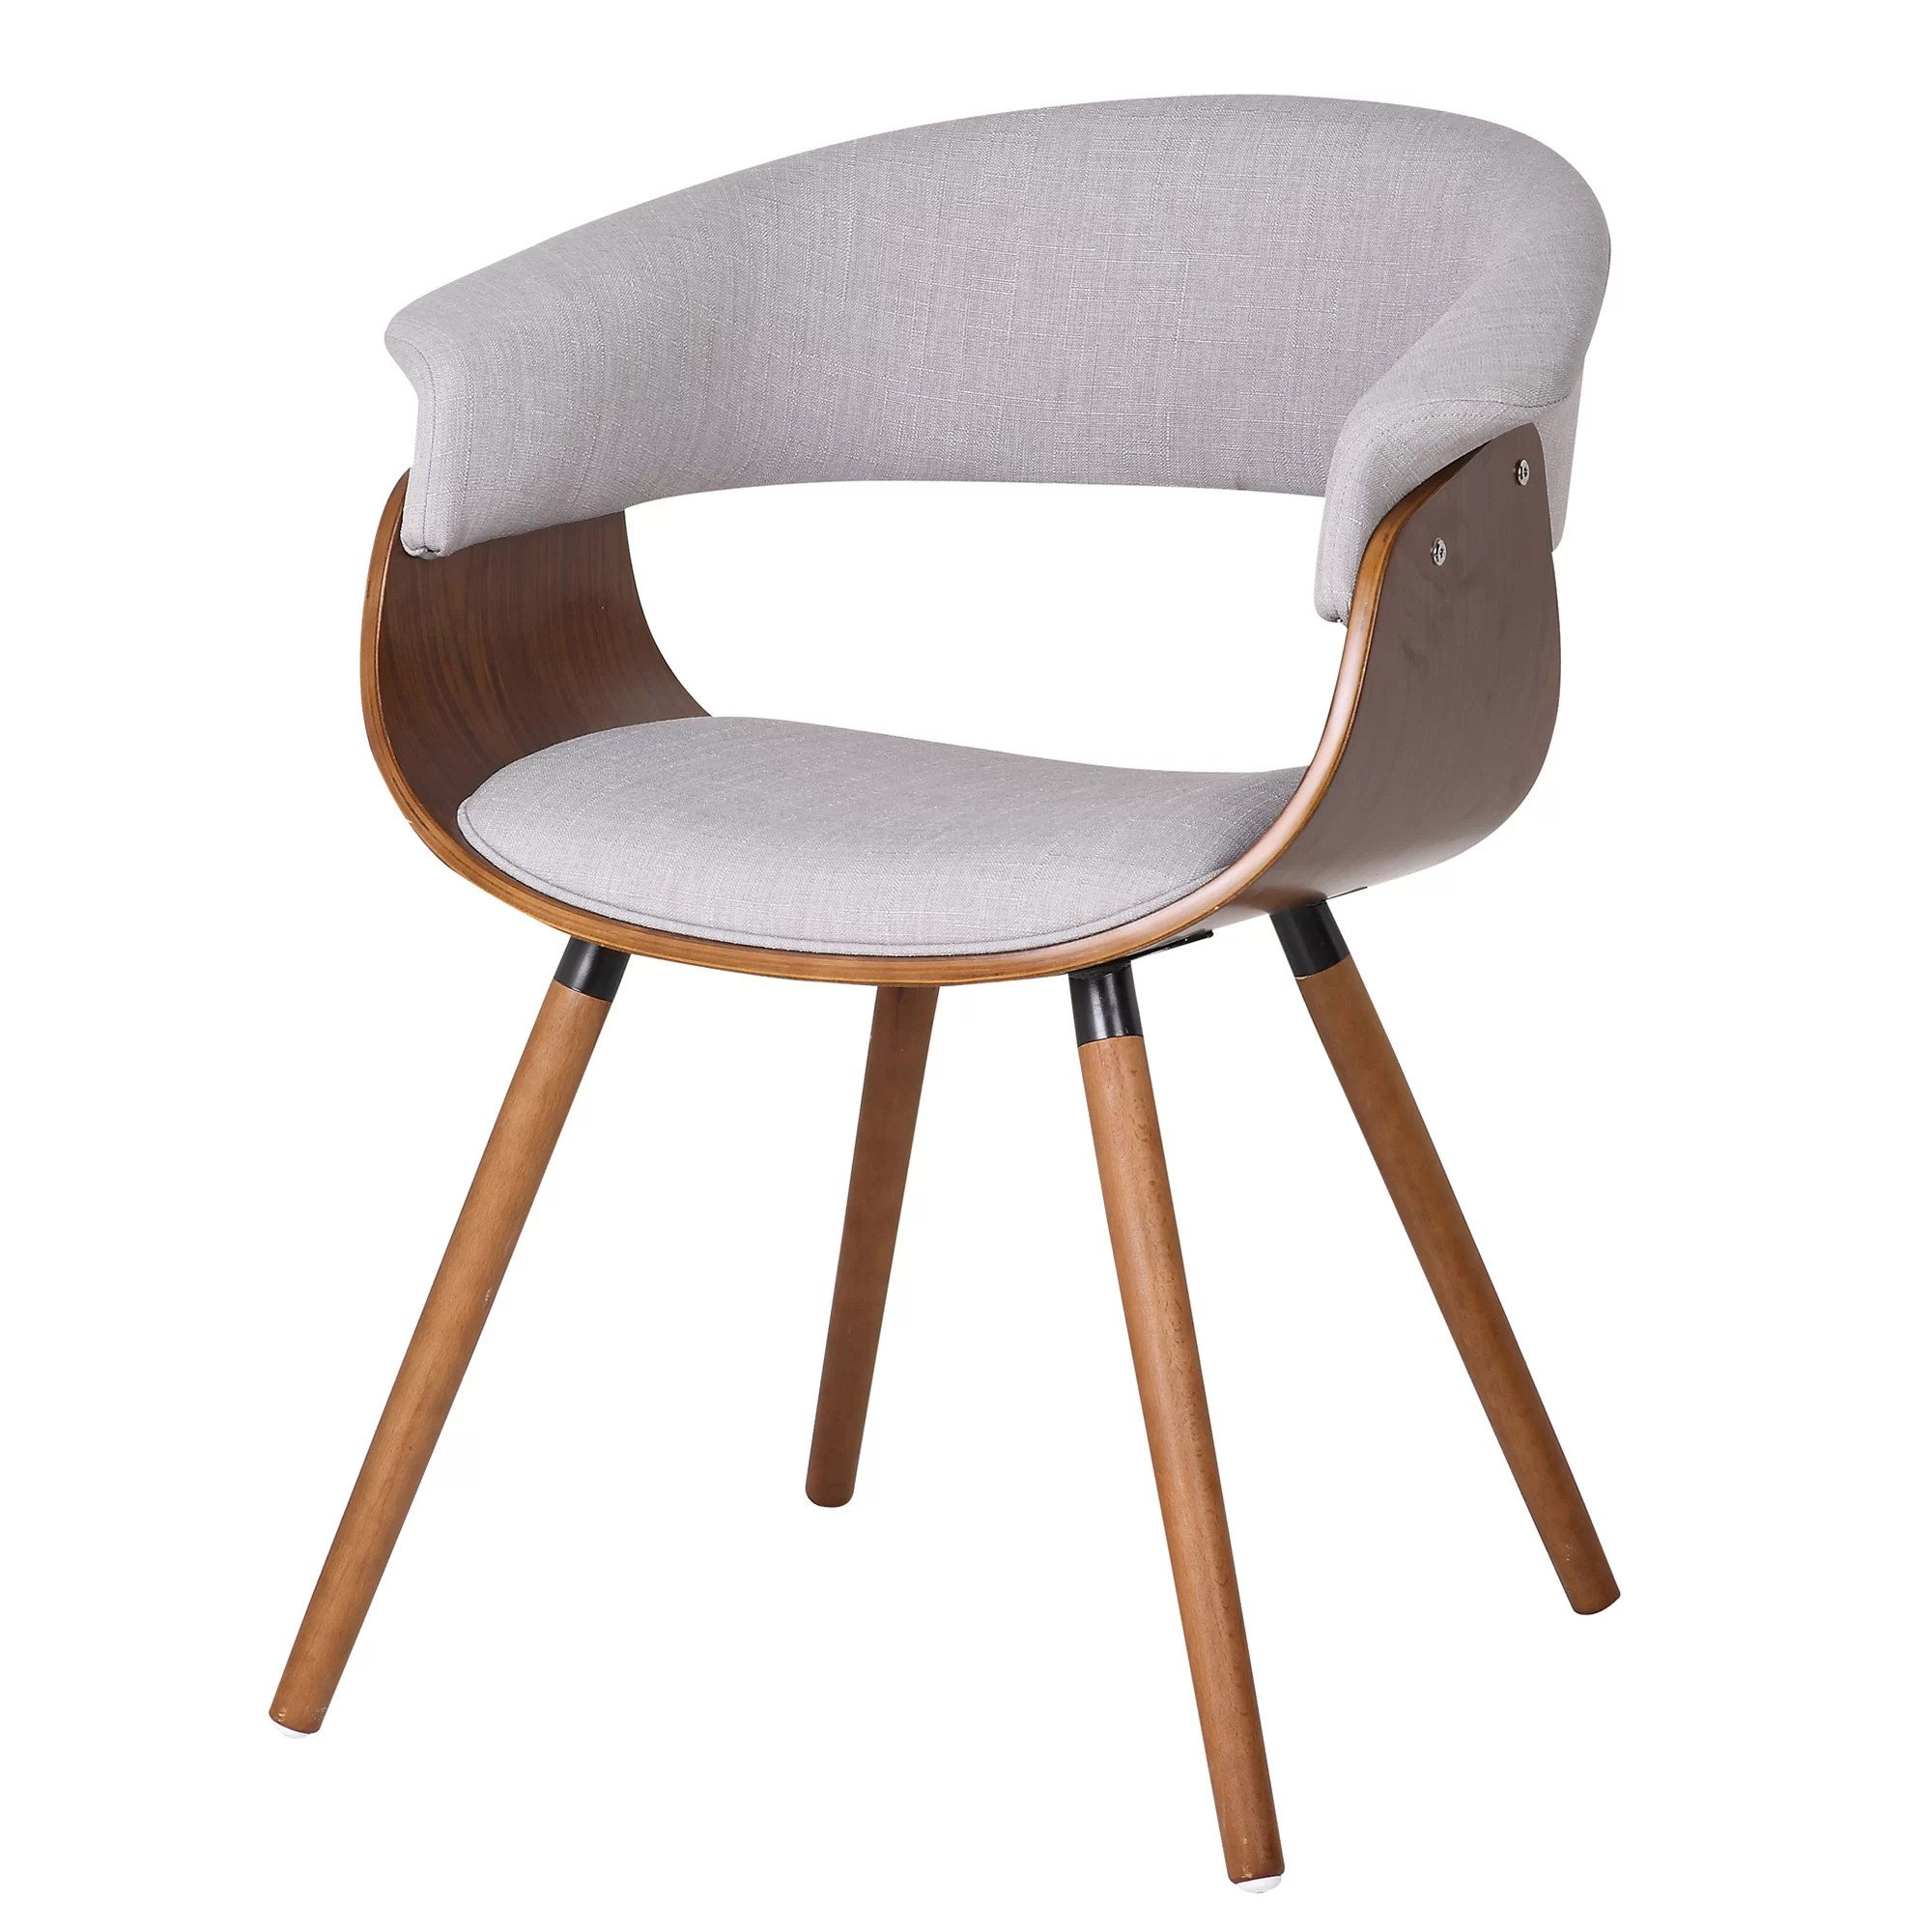 Wood Accent Chair Nspire Bent Wood Accent Barrel Chair And Reviews Wayfair